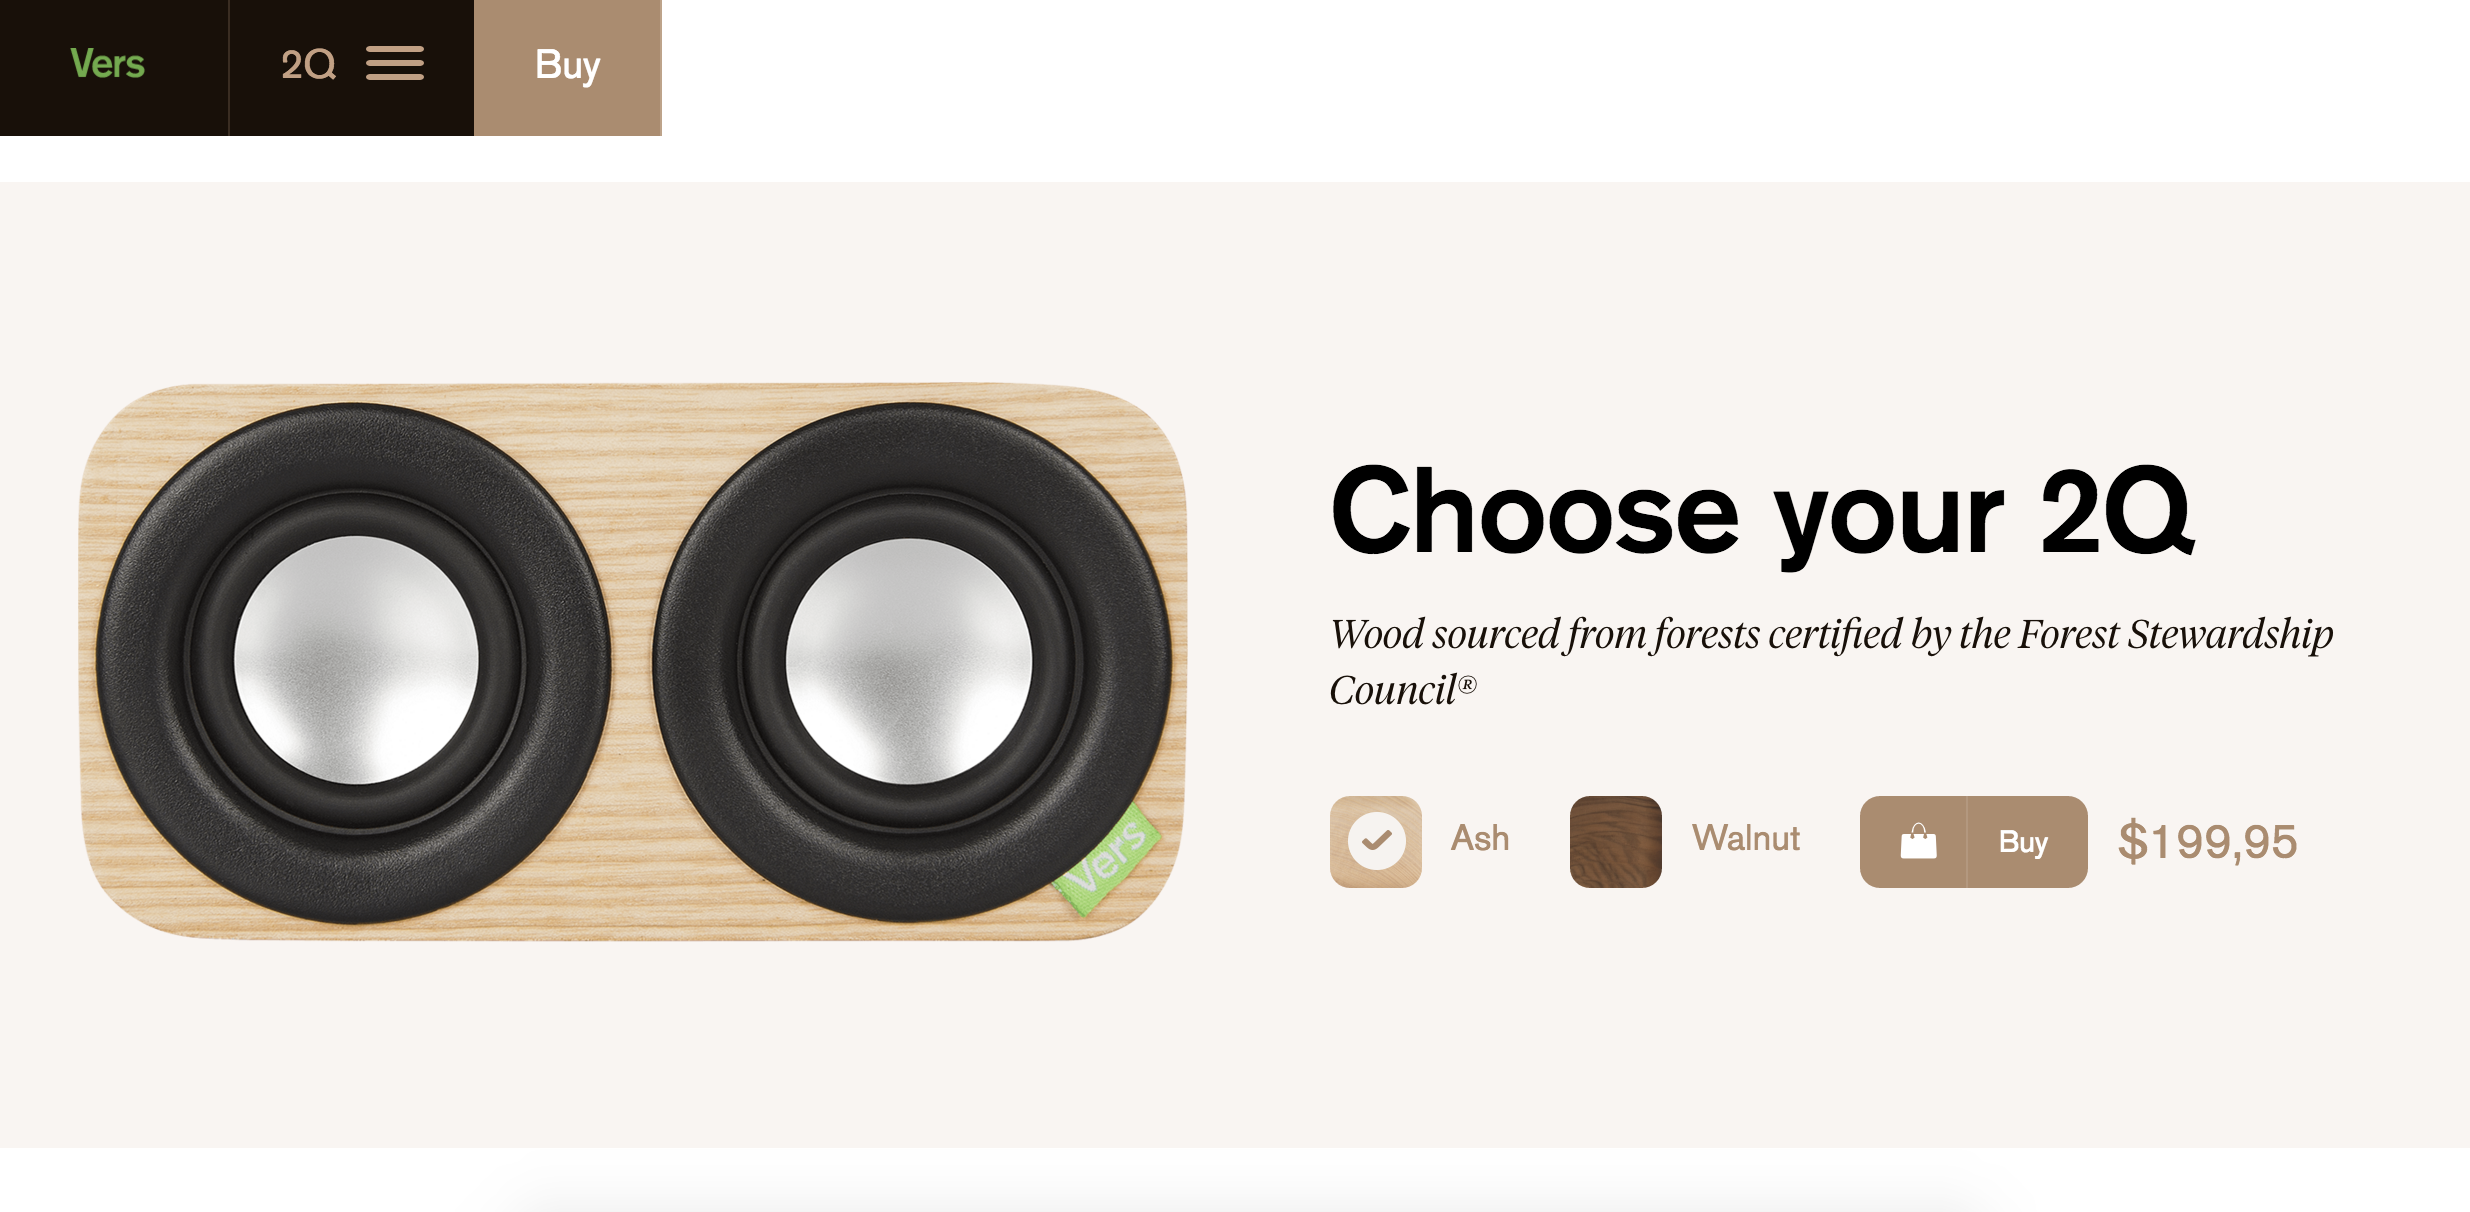 A fittingly beautiful product page, don't you think?